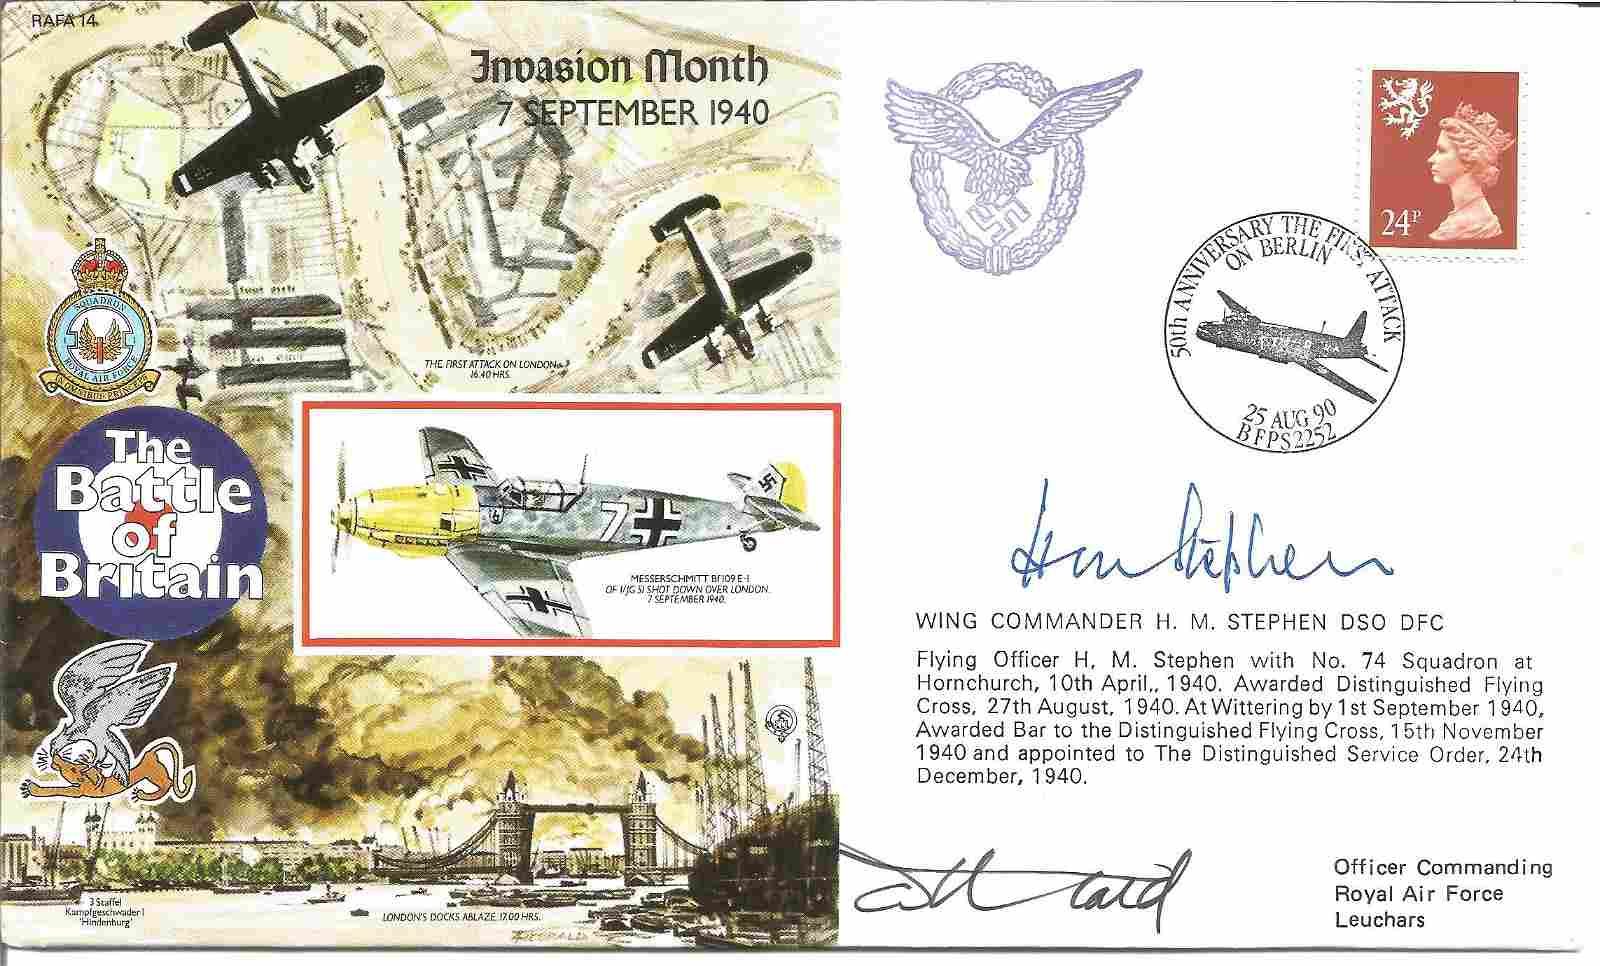 Wg Cdr Huw Stephen DSO DFC WW2 BOB pilot signed 1990,